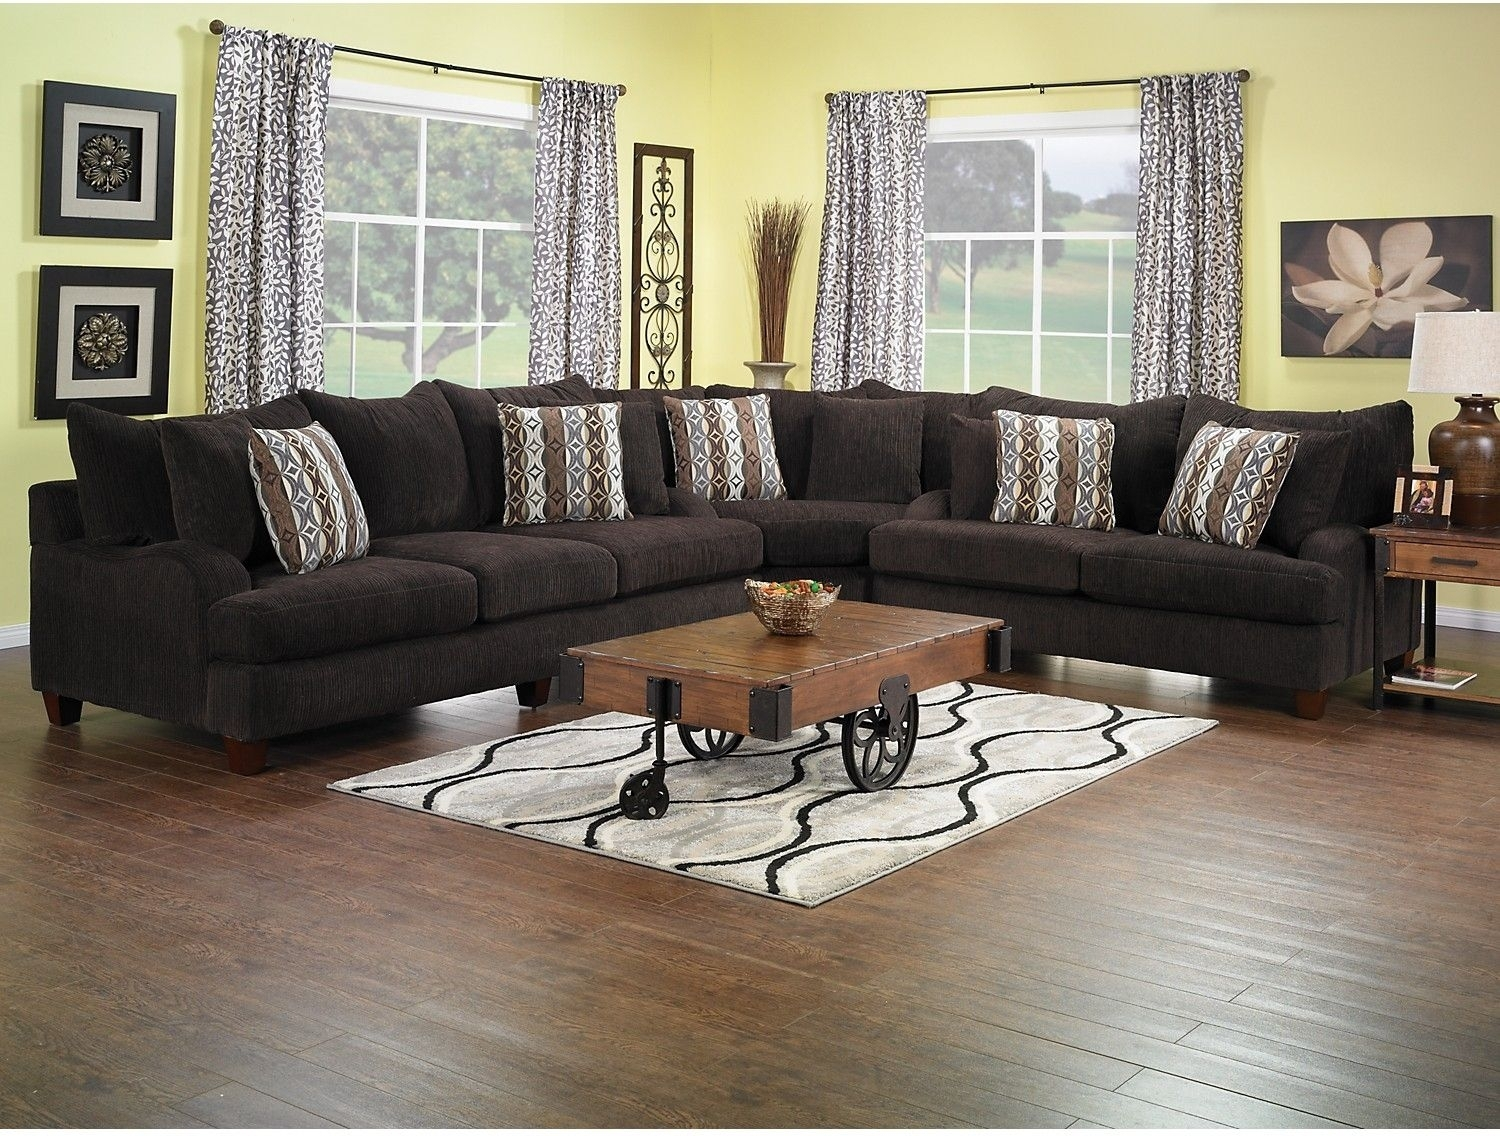 Putty Chenille 3 Piece Sectional – Chocolate | Living Room Furniture In Sectional Sofas At Brick (View 11 of 15)